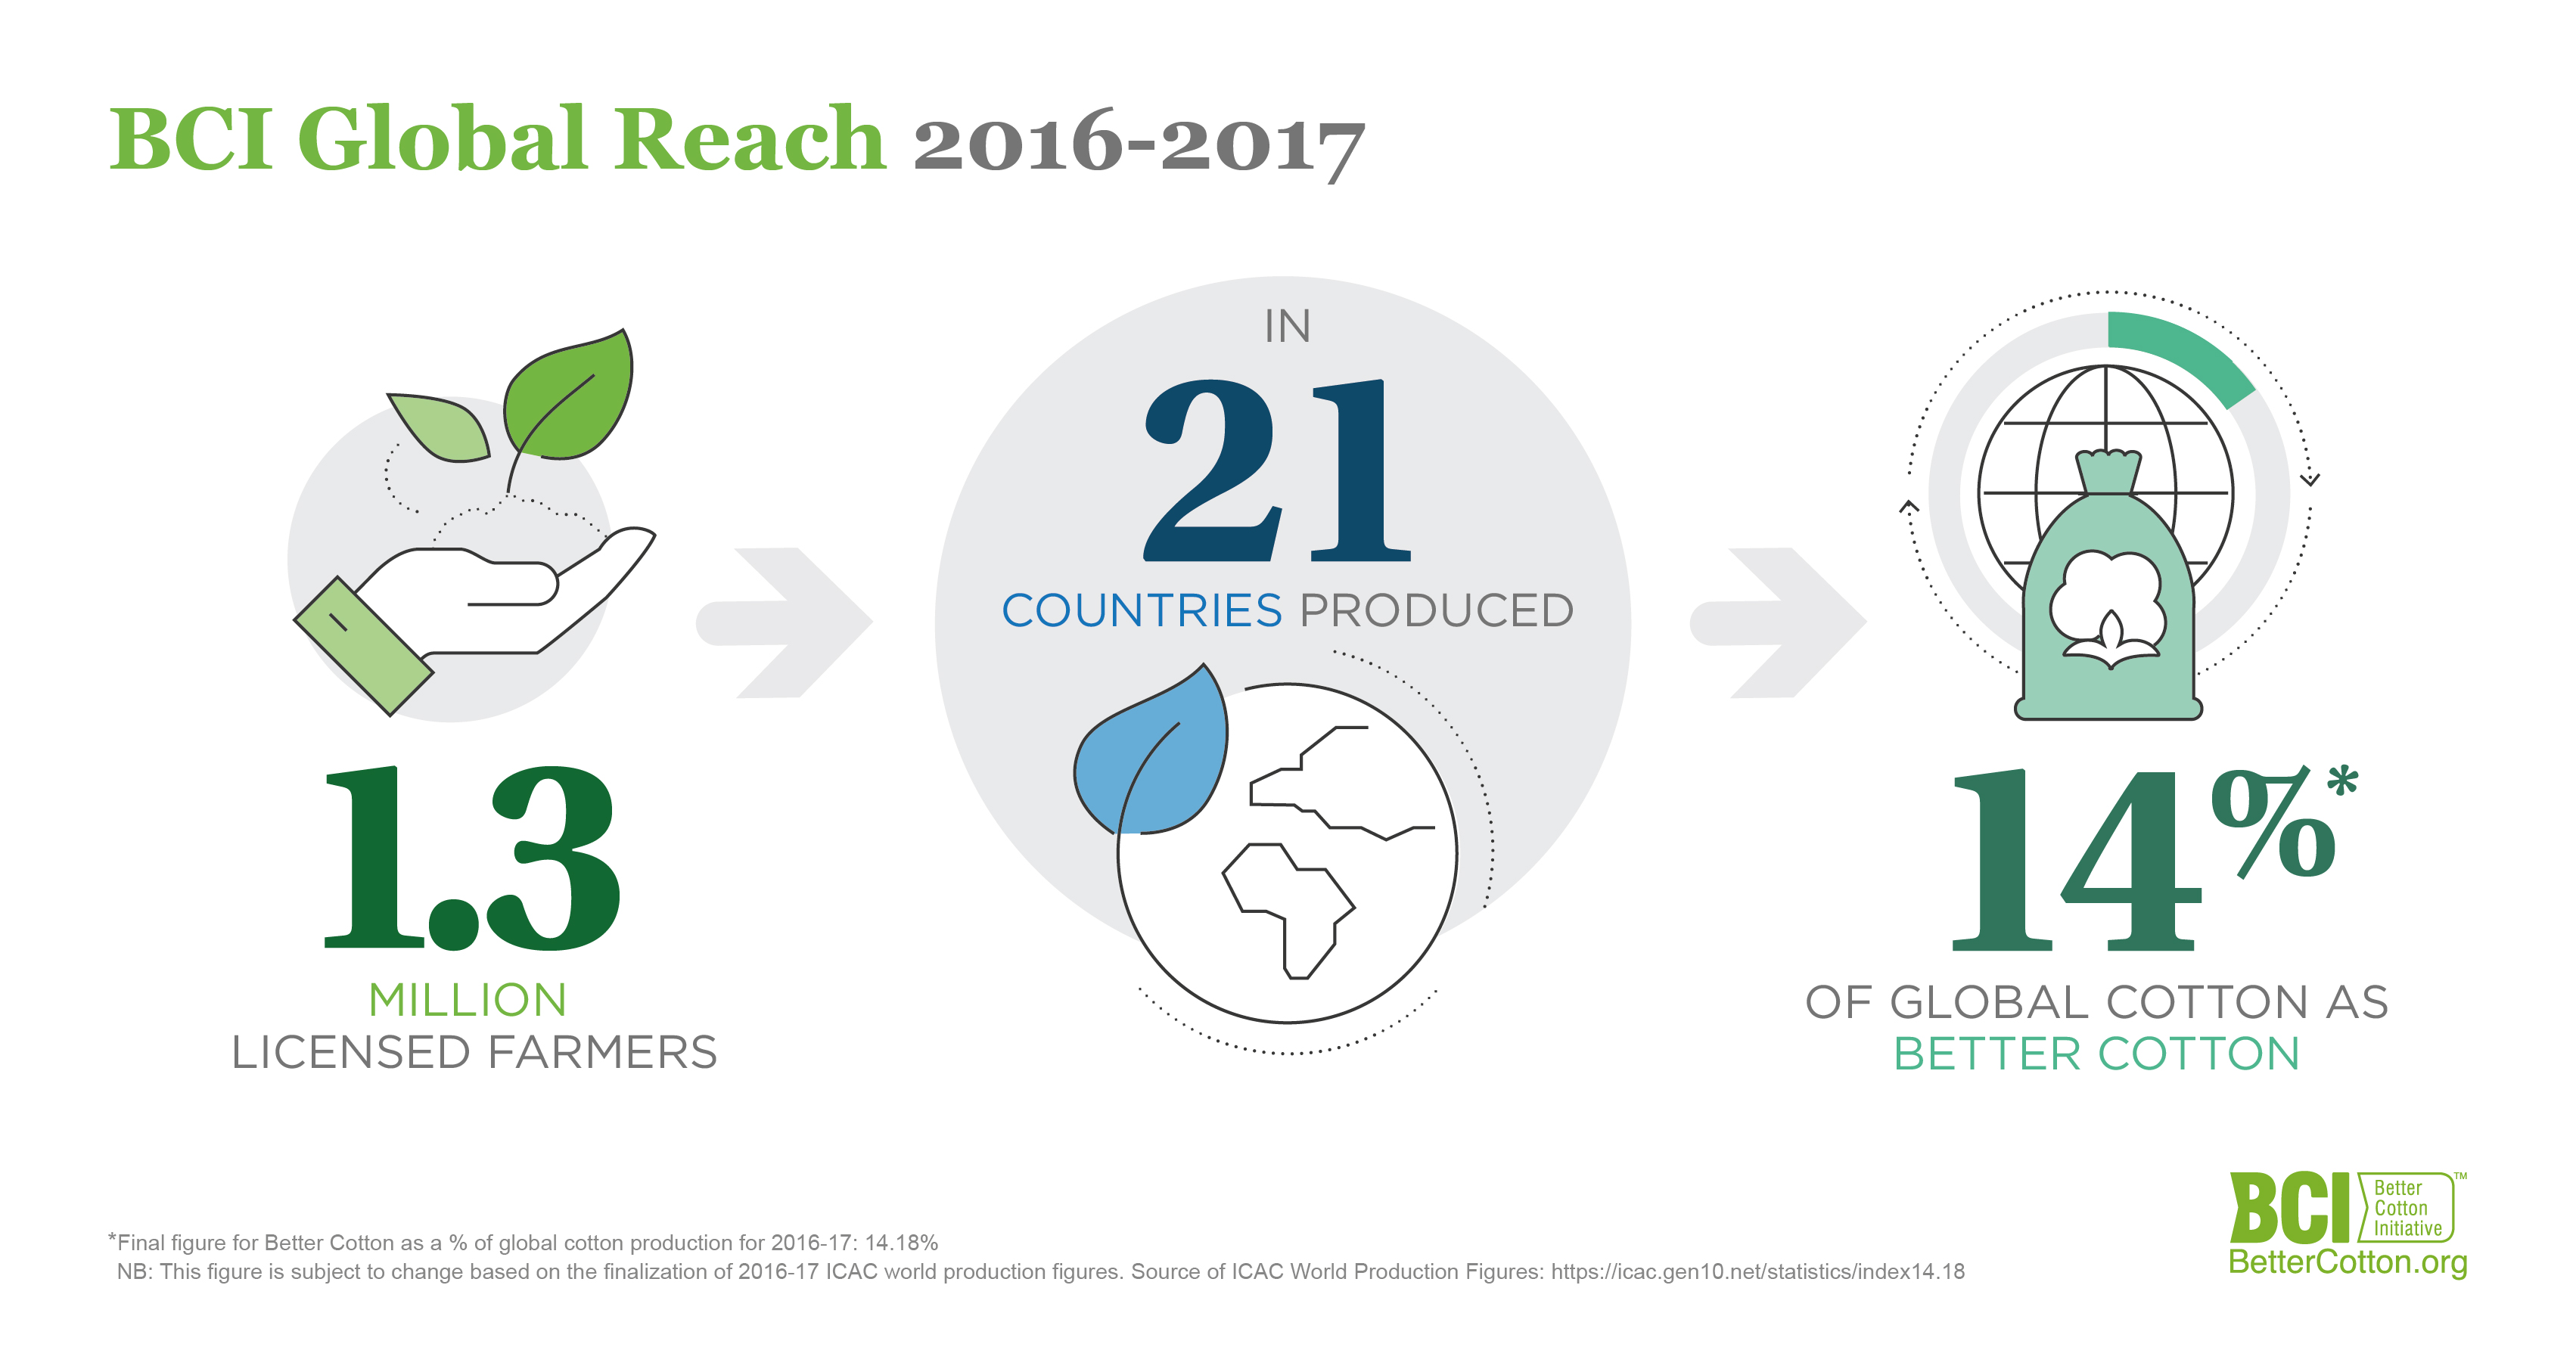 BCI 2017 Annual Report Reveals Better Cotton Accounts for 14